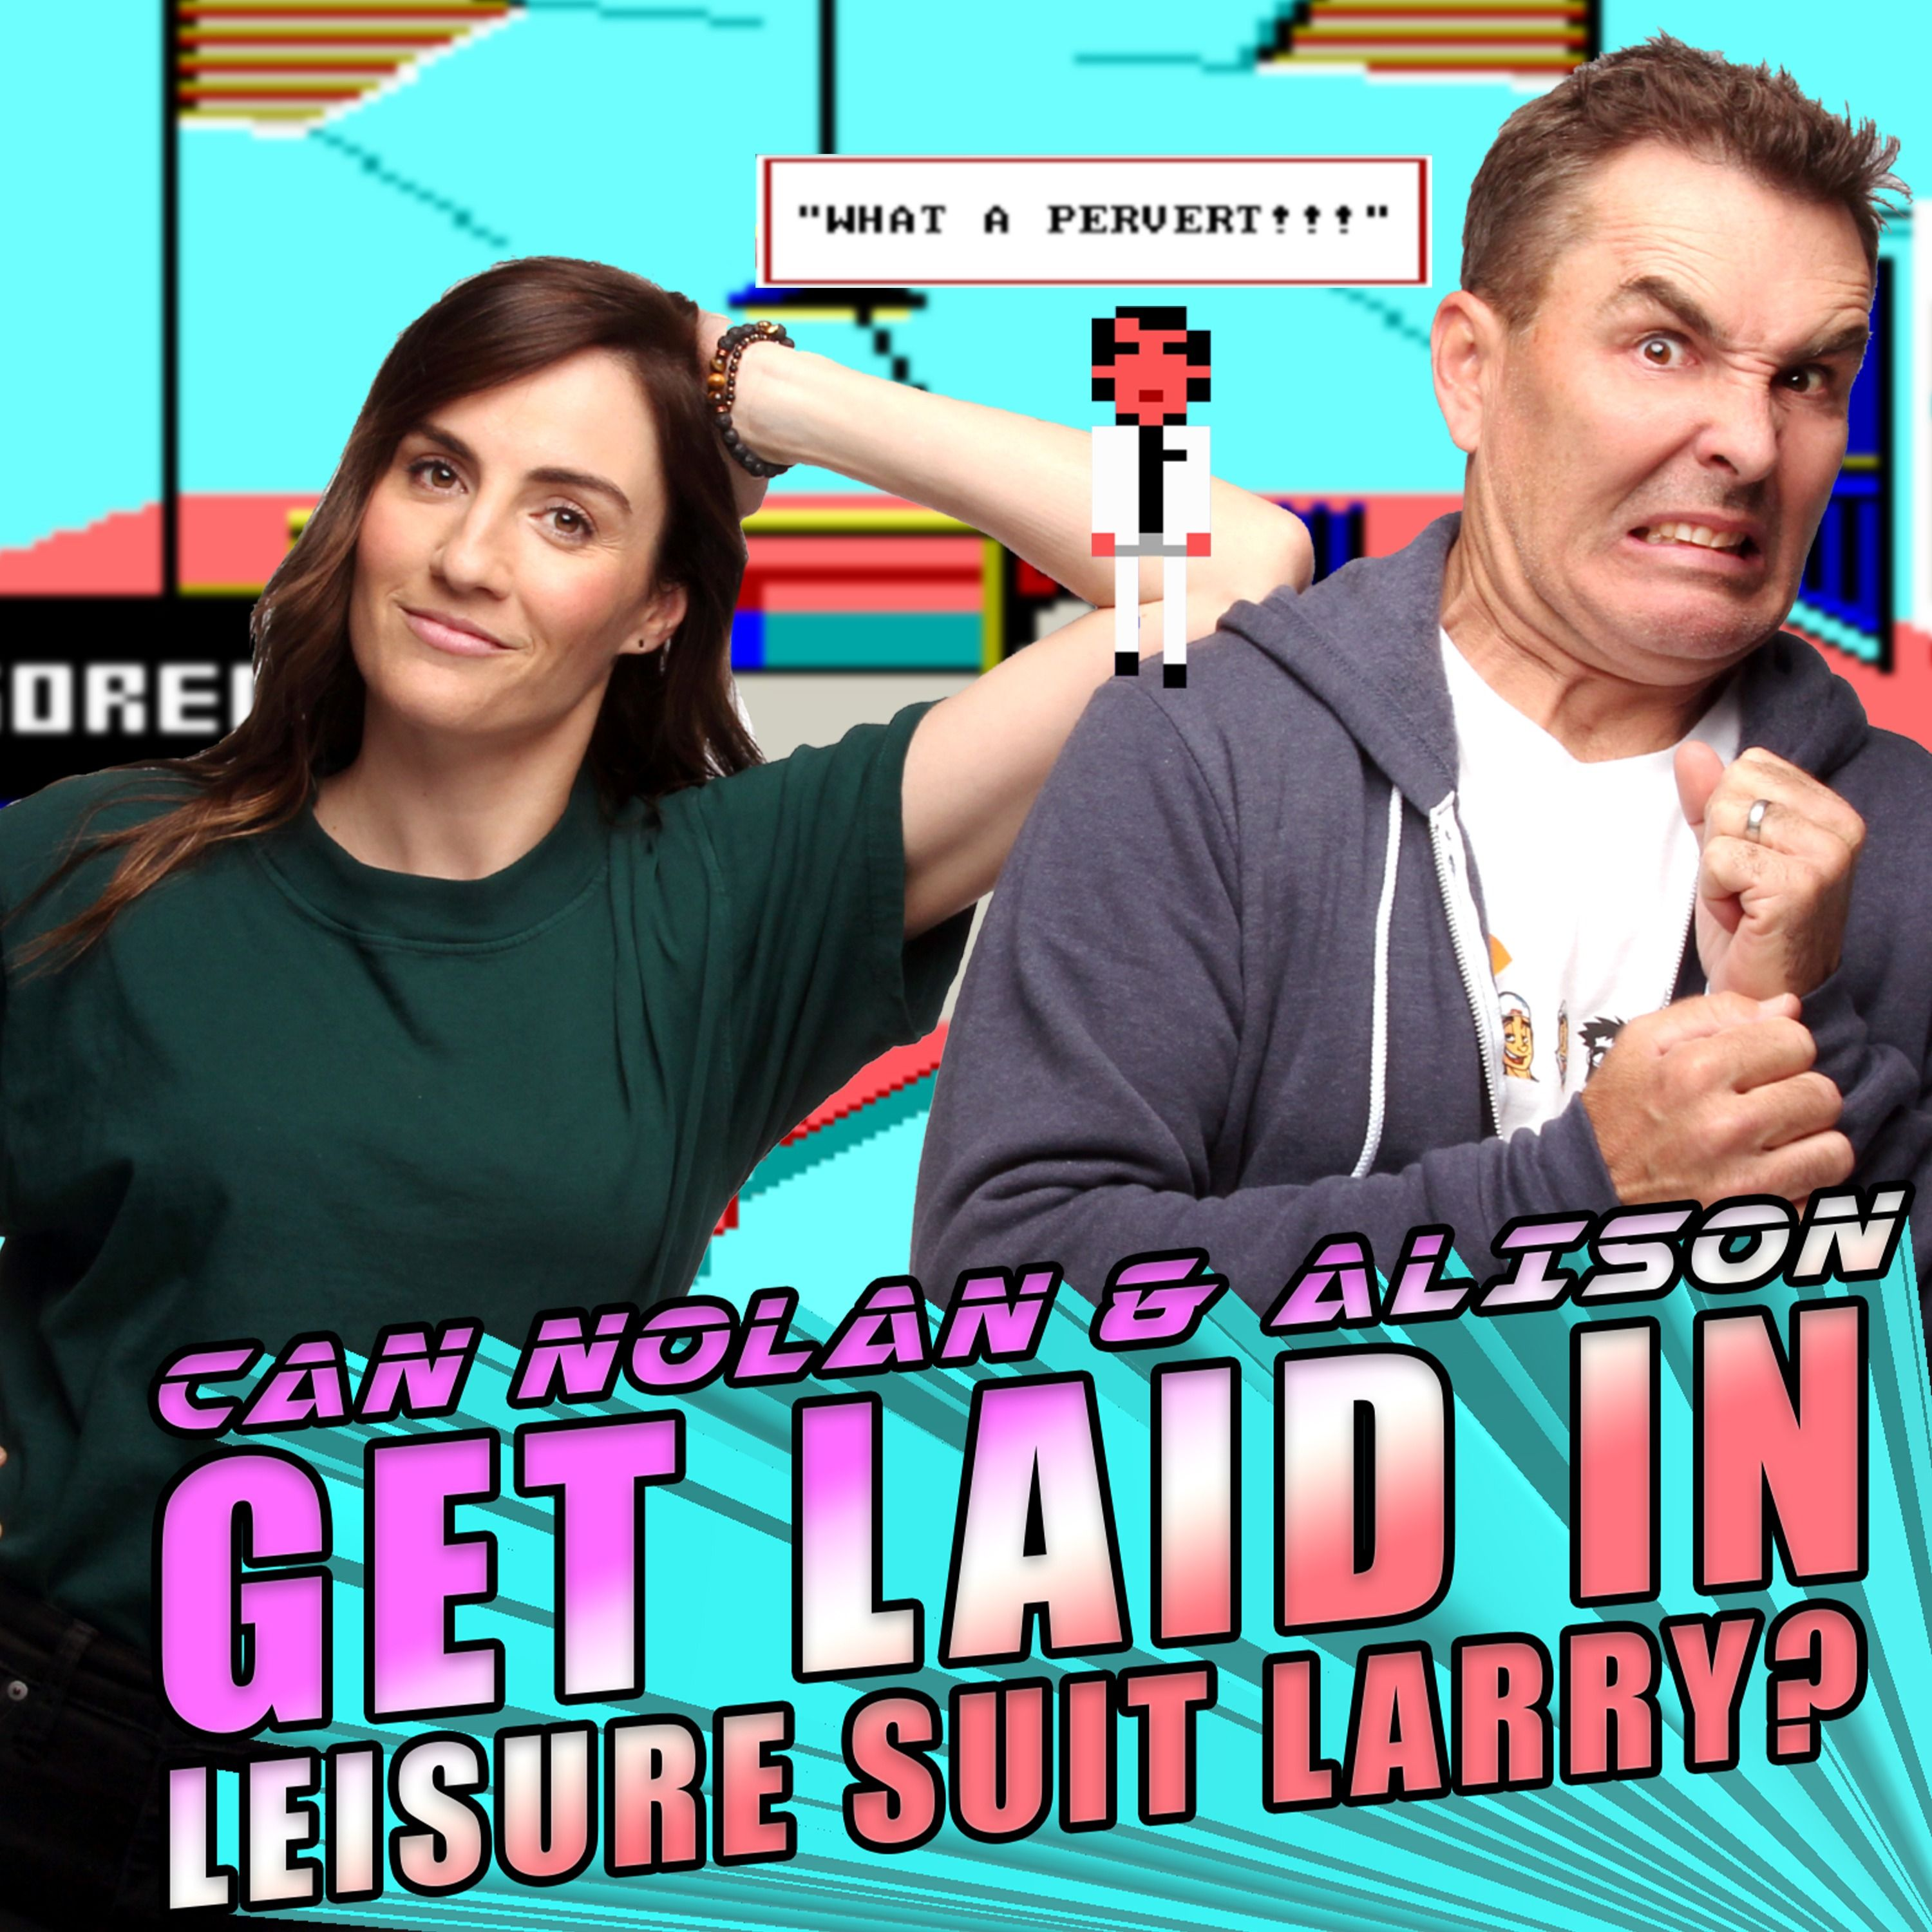 Can Nolan and Alison Get Laid in Leisure Suit Larry? | RETRO REPLAY